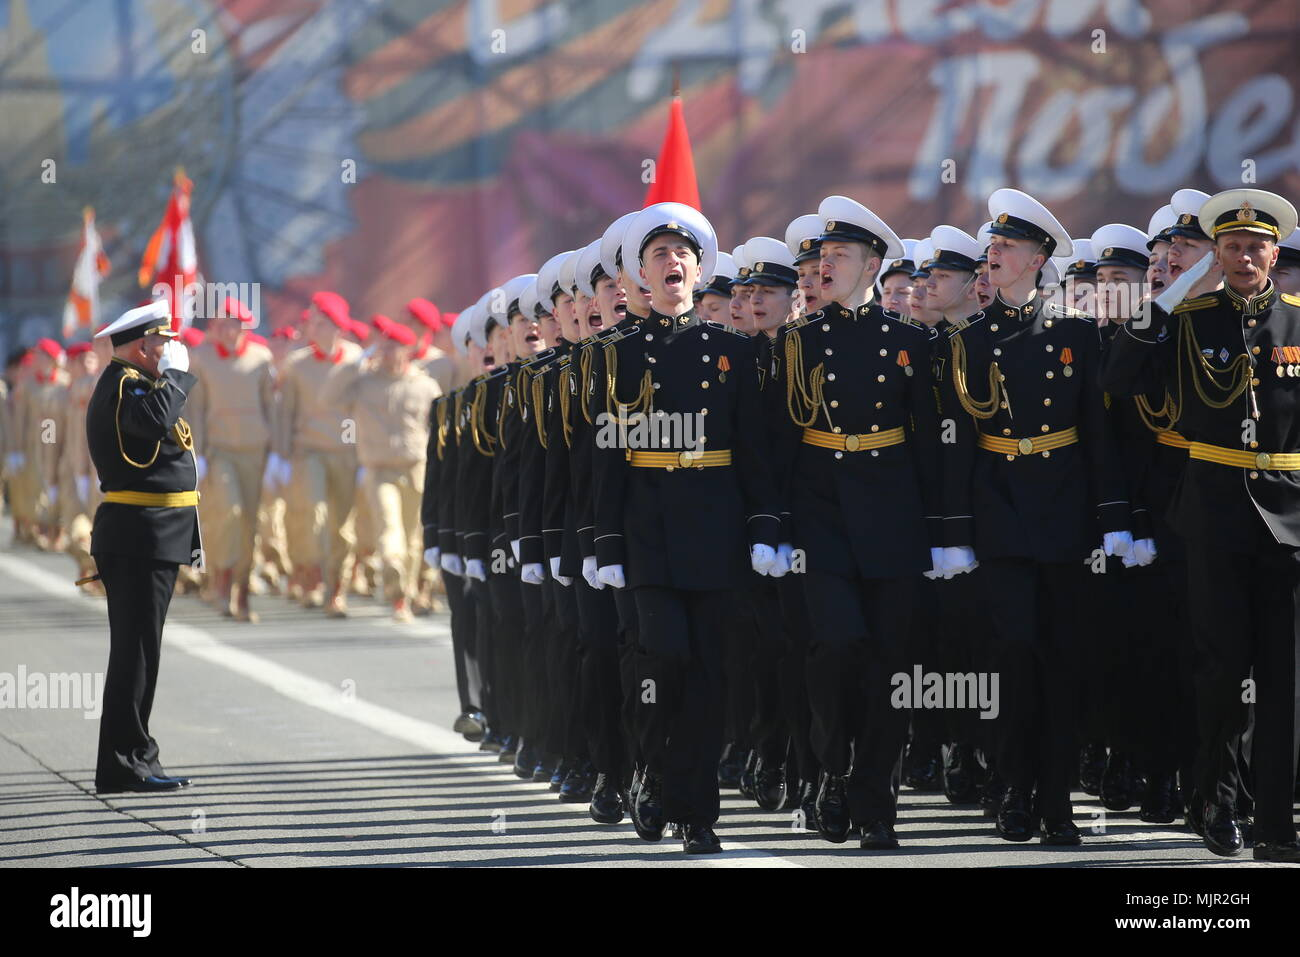 St Petersburg, Russia. 06th Sep, 2018. Servicemen march in formation in St Petersburg's Palace Square during a dress rehearsal of the upcoming 9 May military parade marking the 73rd anniversary of the victory in the Great Patriotic War, the Eastern Front of World War II. Peter Kovalev/TASS Credit: ITAR-TASS News Agency/Alamy Live News Stock Photo